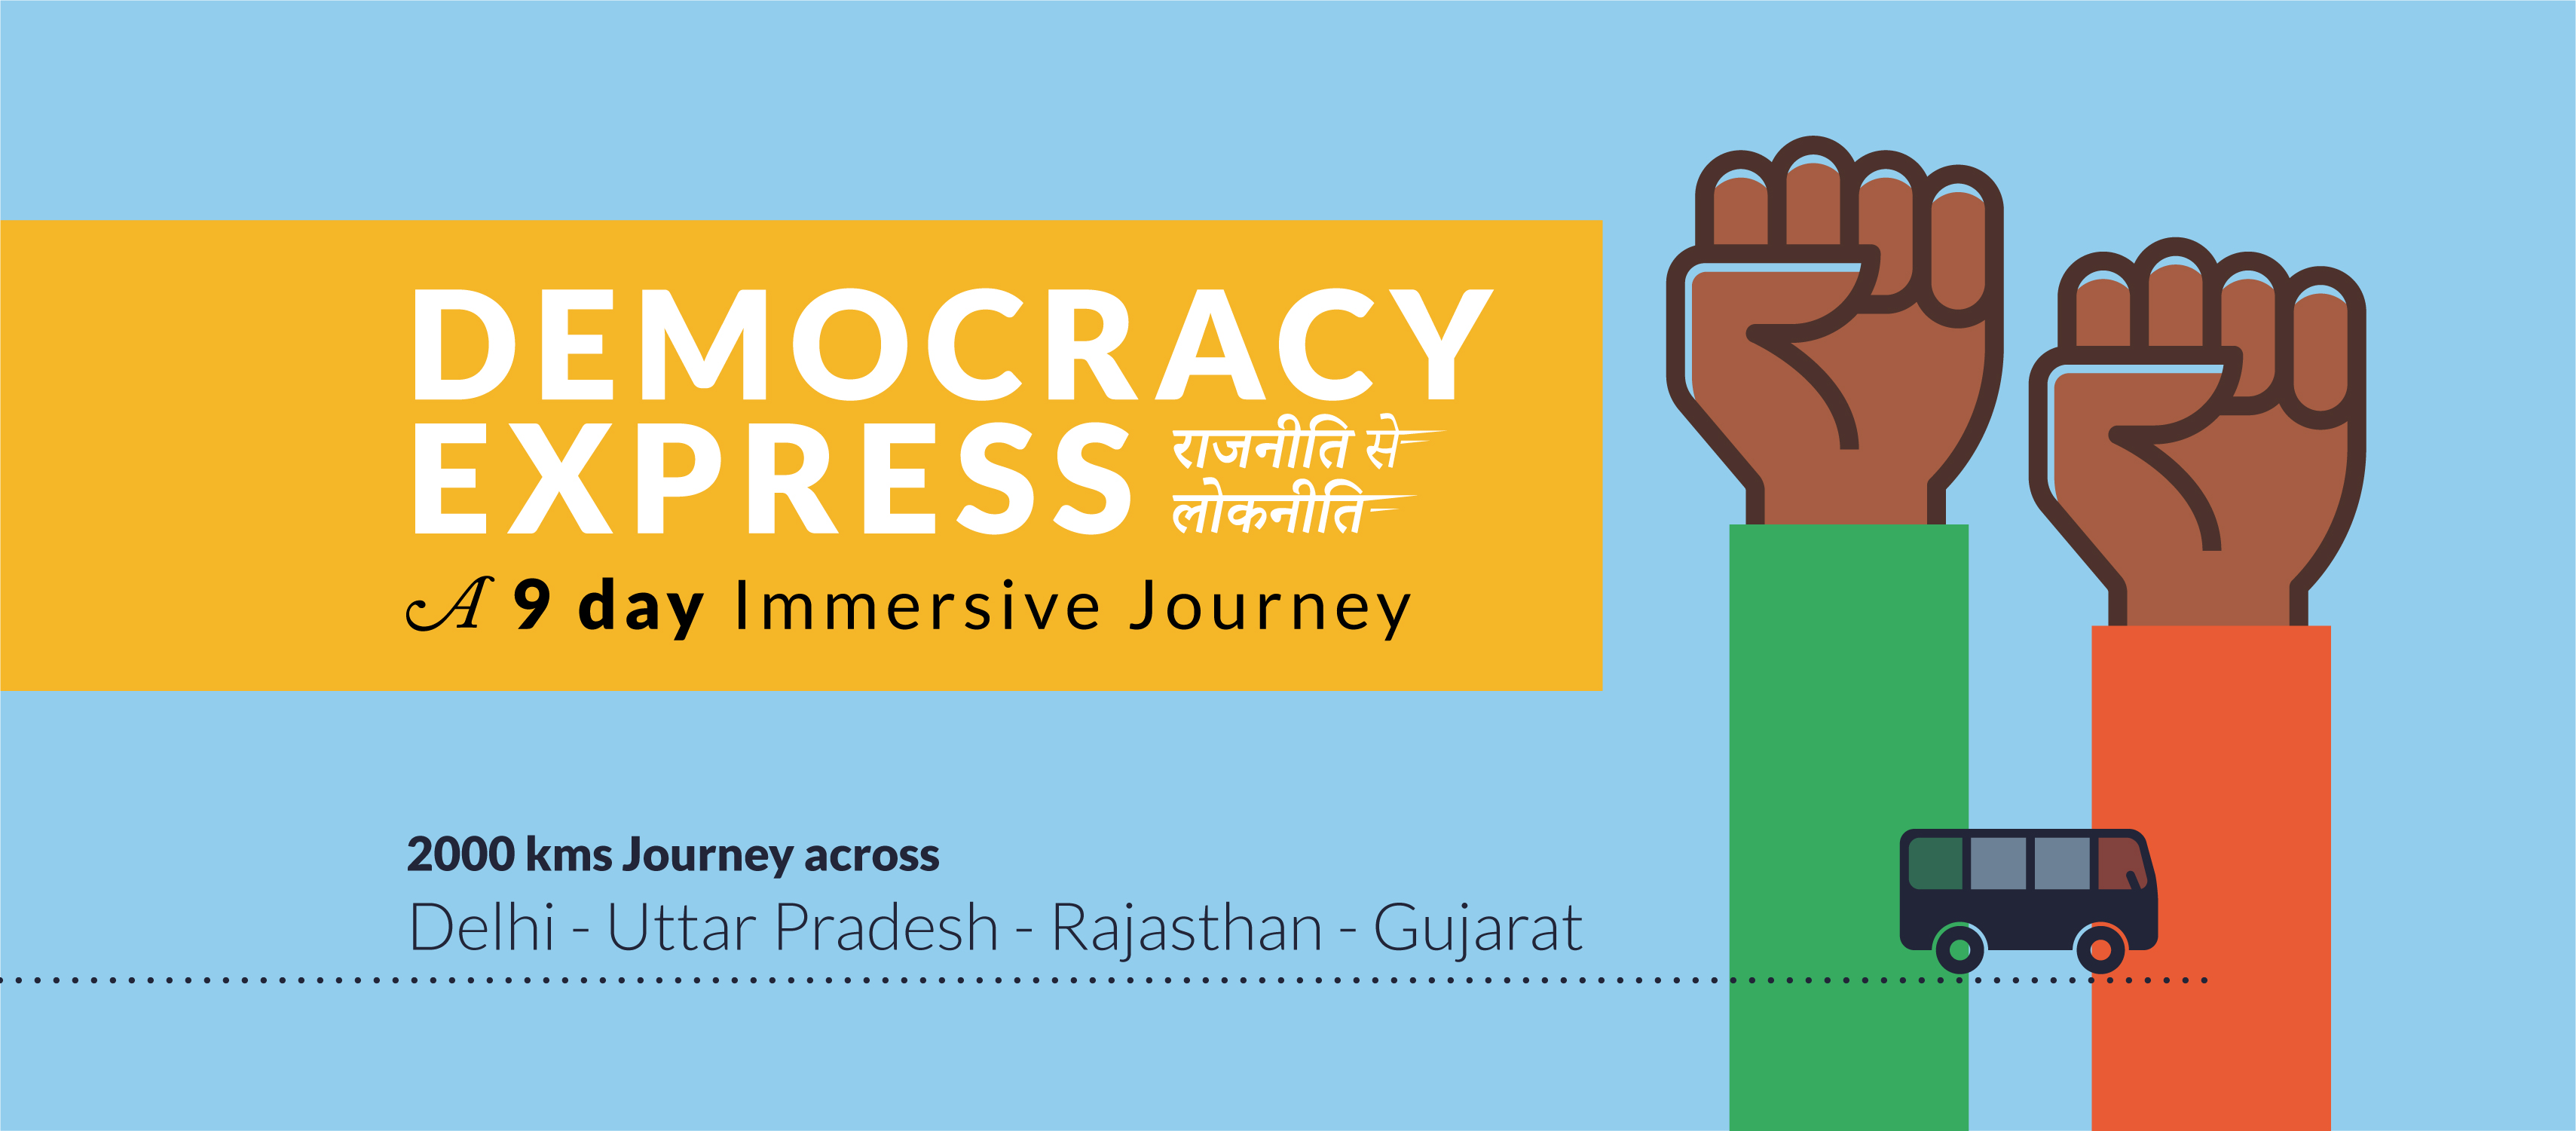 Democracy Express: Immersive Journey by Indian School of Democracy, Delhi [Dec 21-29]: Apply by Oct 20